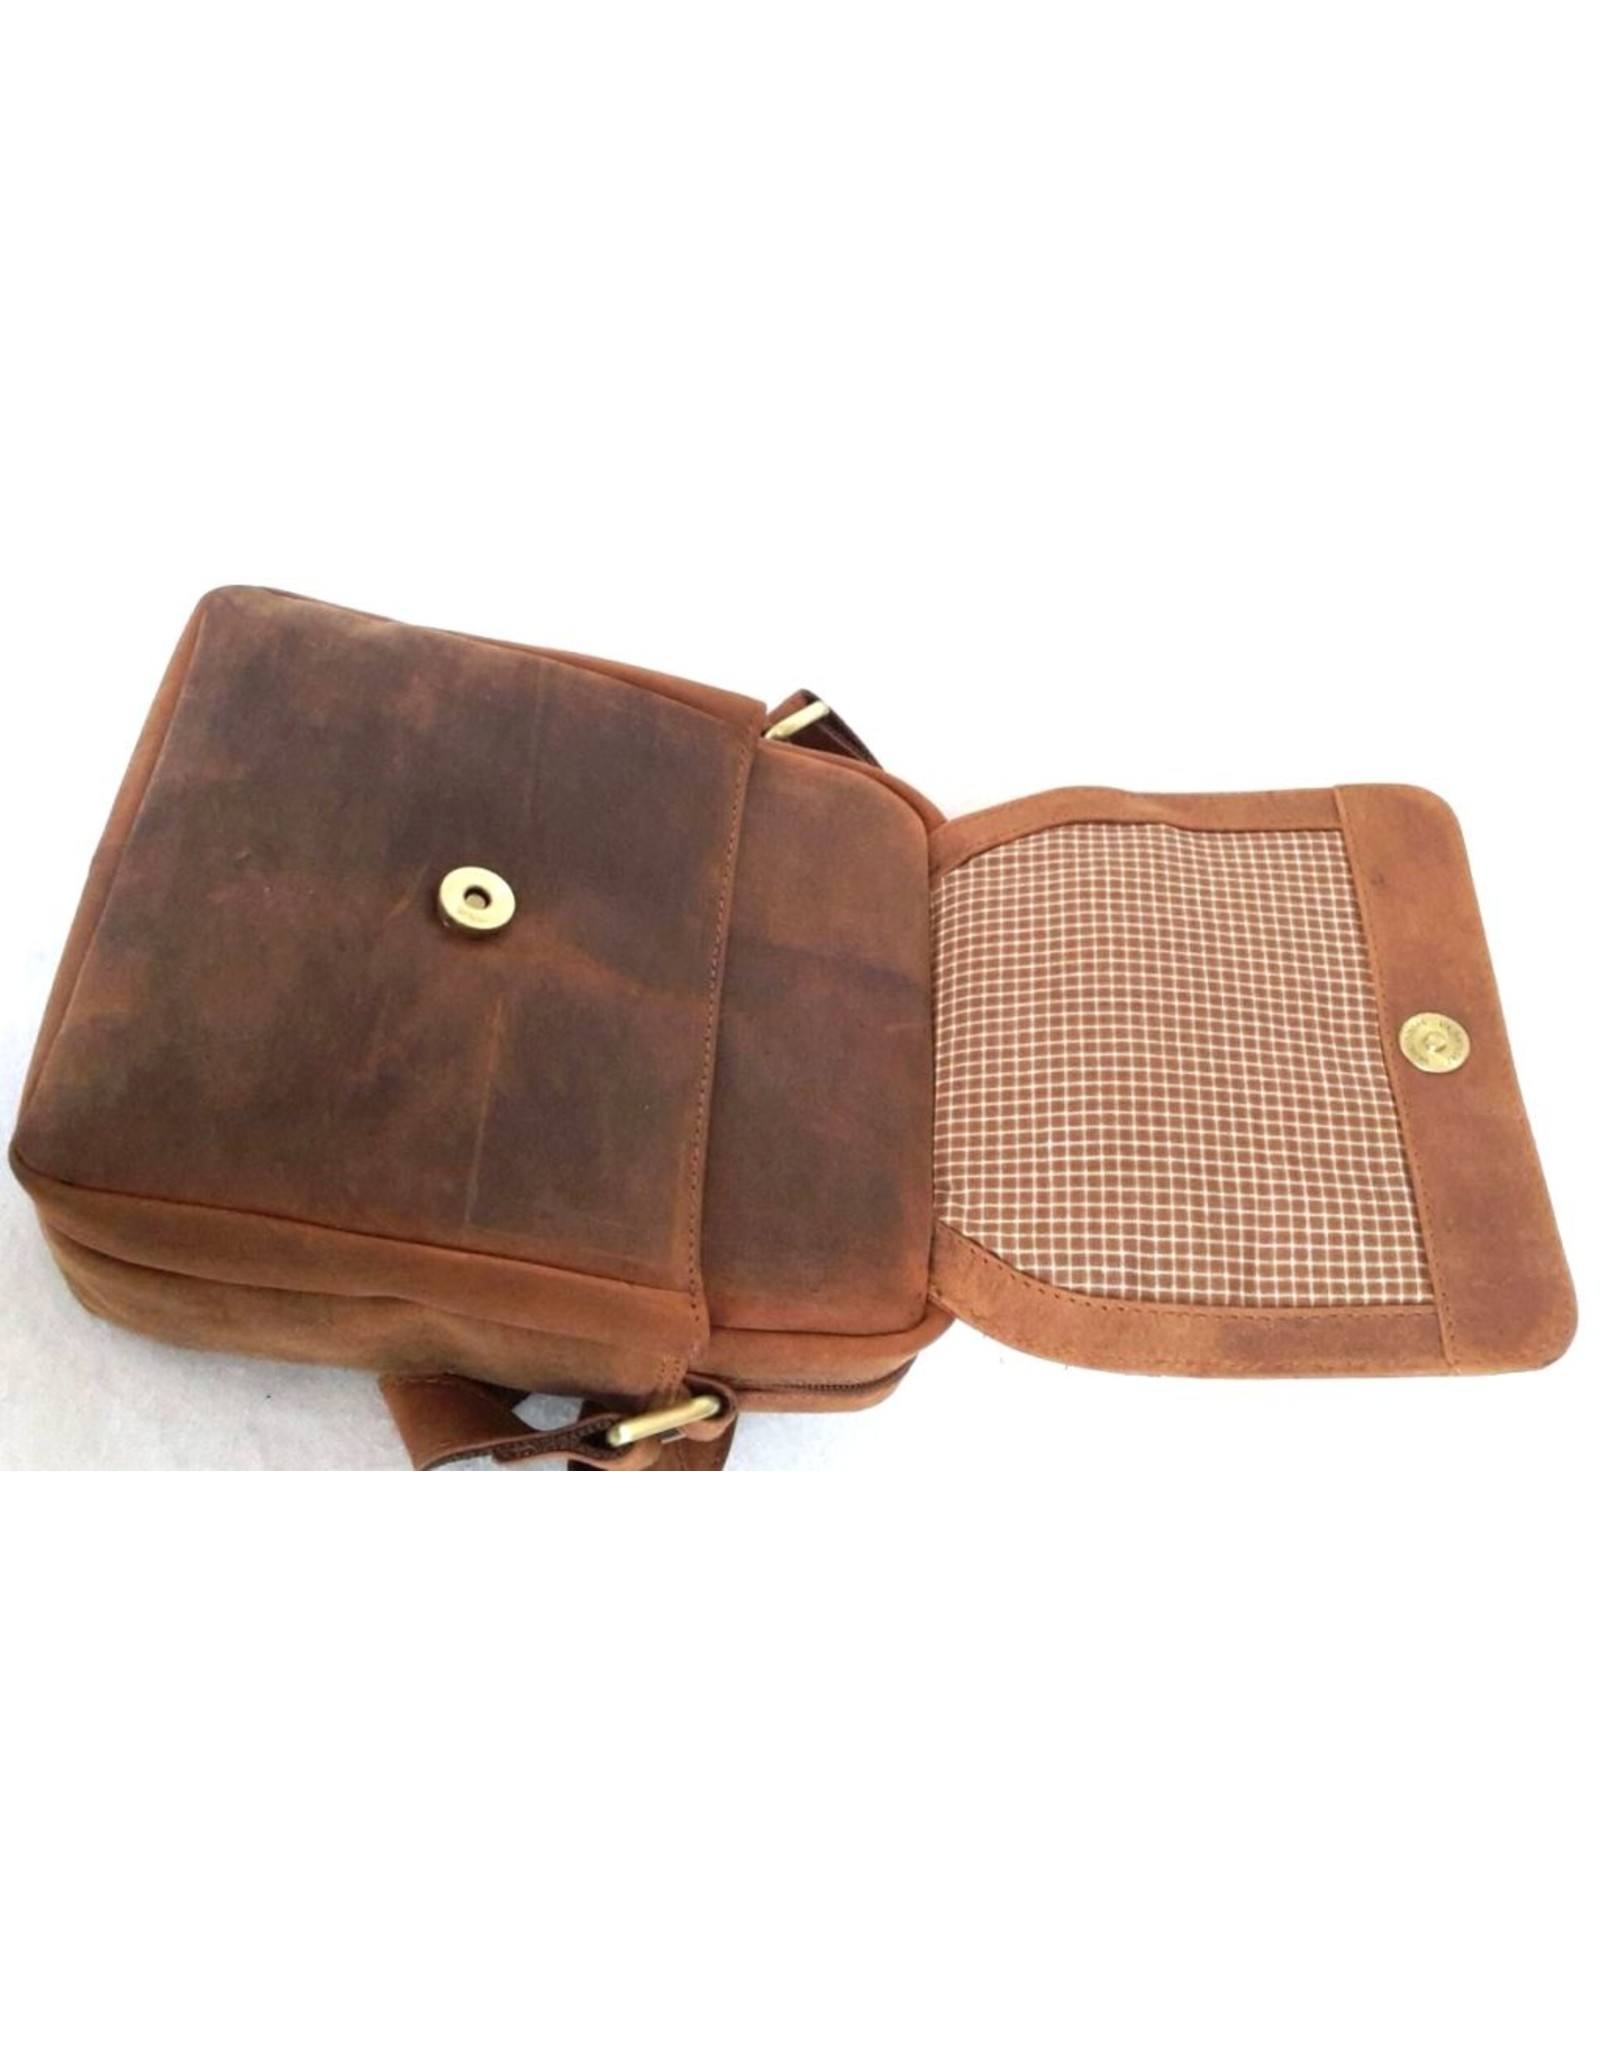 Hunters Leather shoulder bags Leather crossbody bags - Hunter crossbody bag with nicely rounded corners (tan)